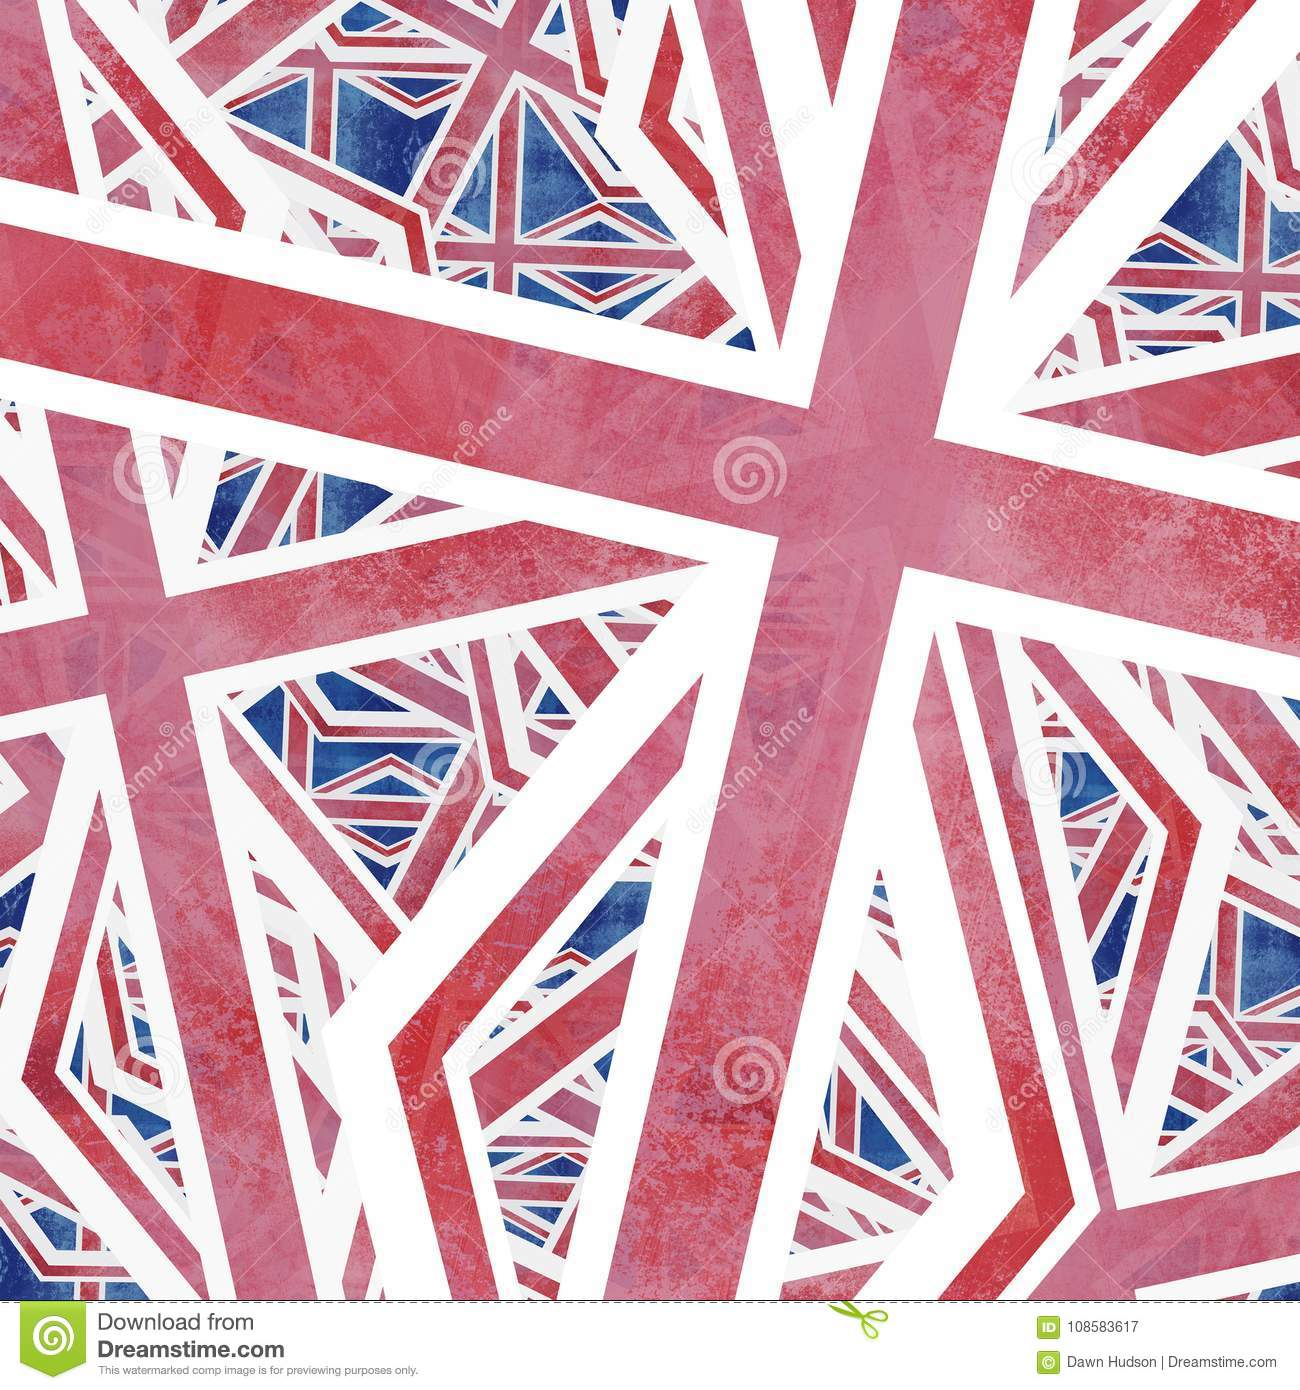 Union Jack Flag Collage Abstract